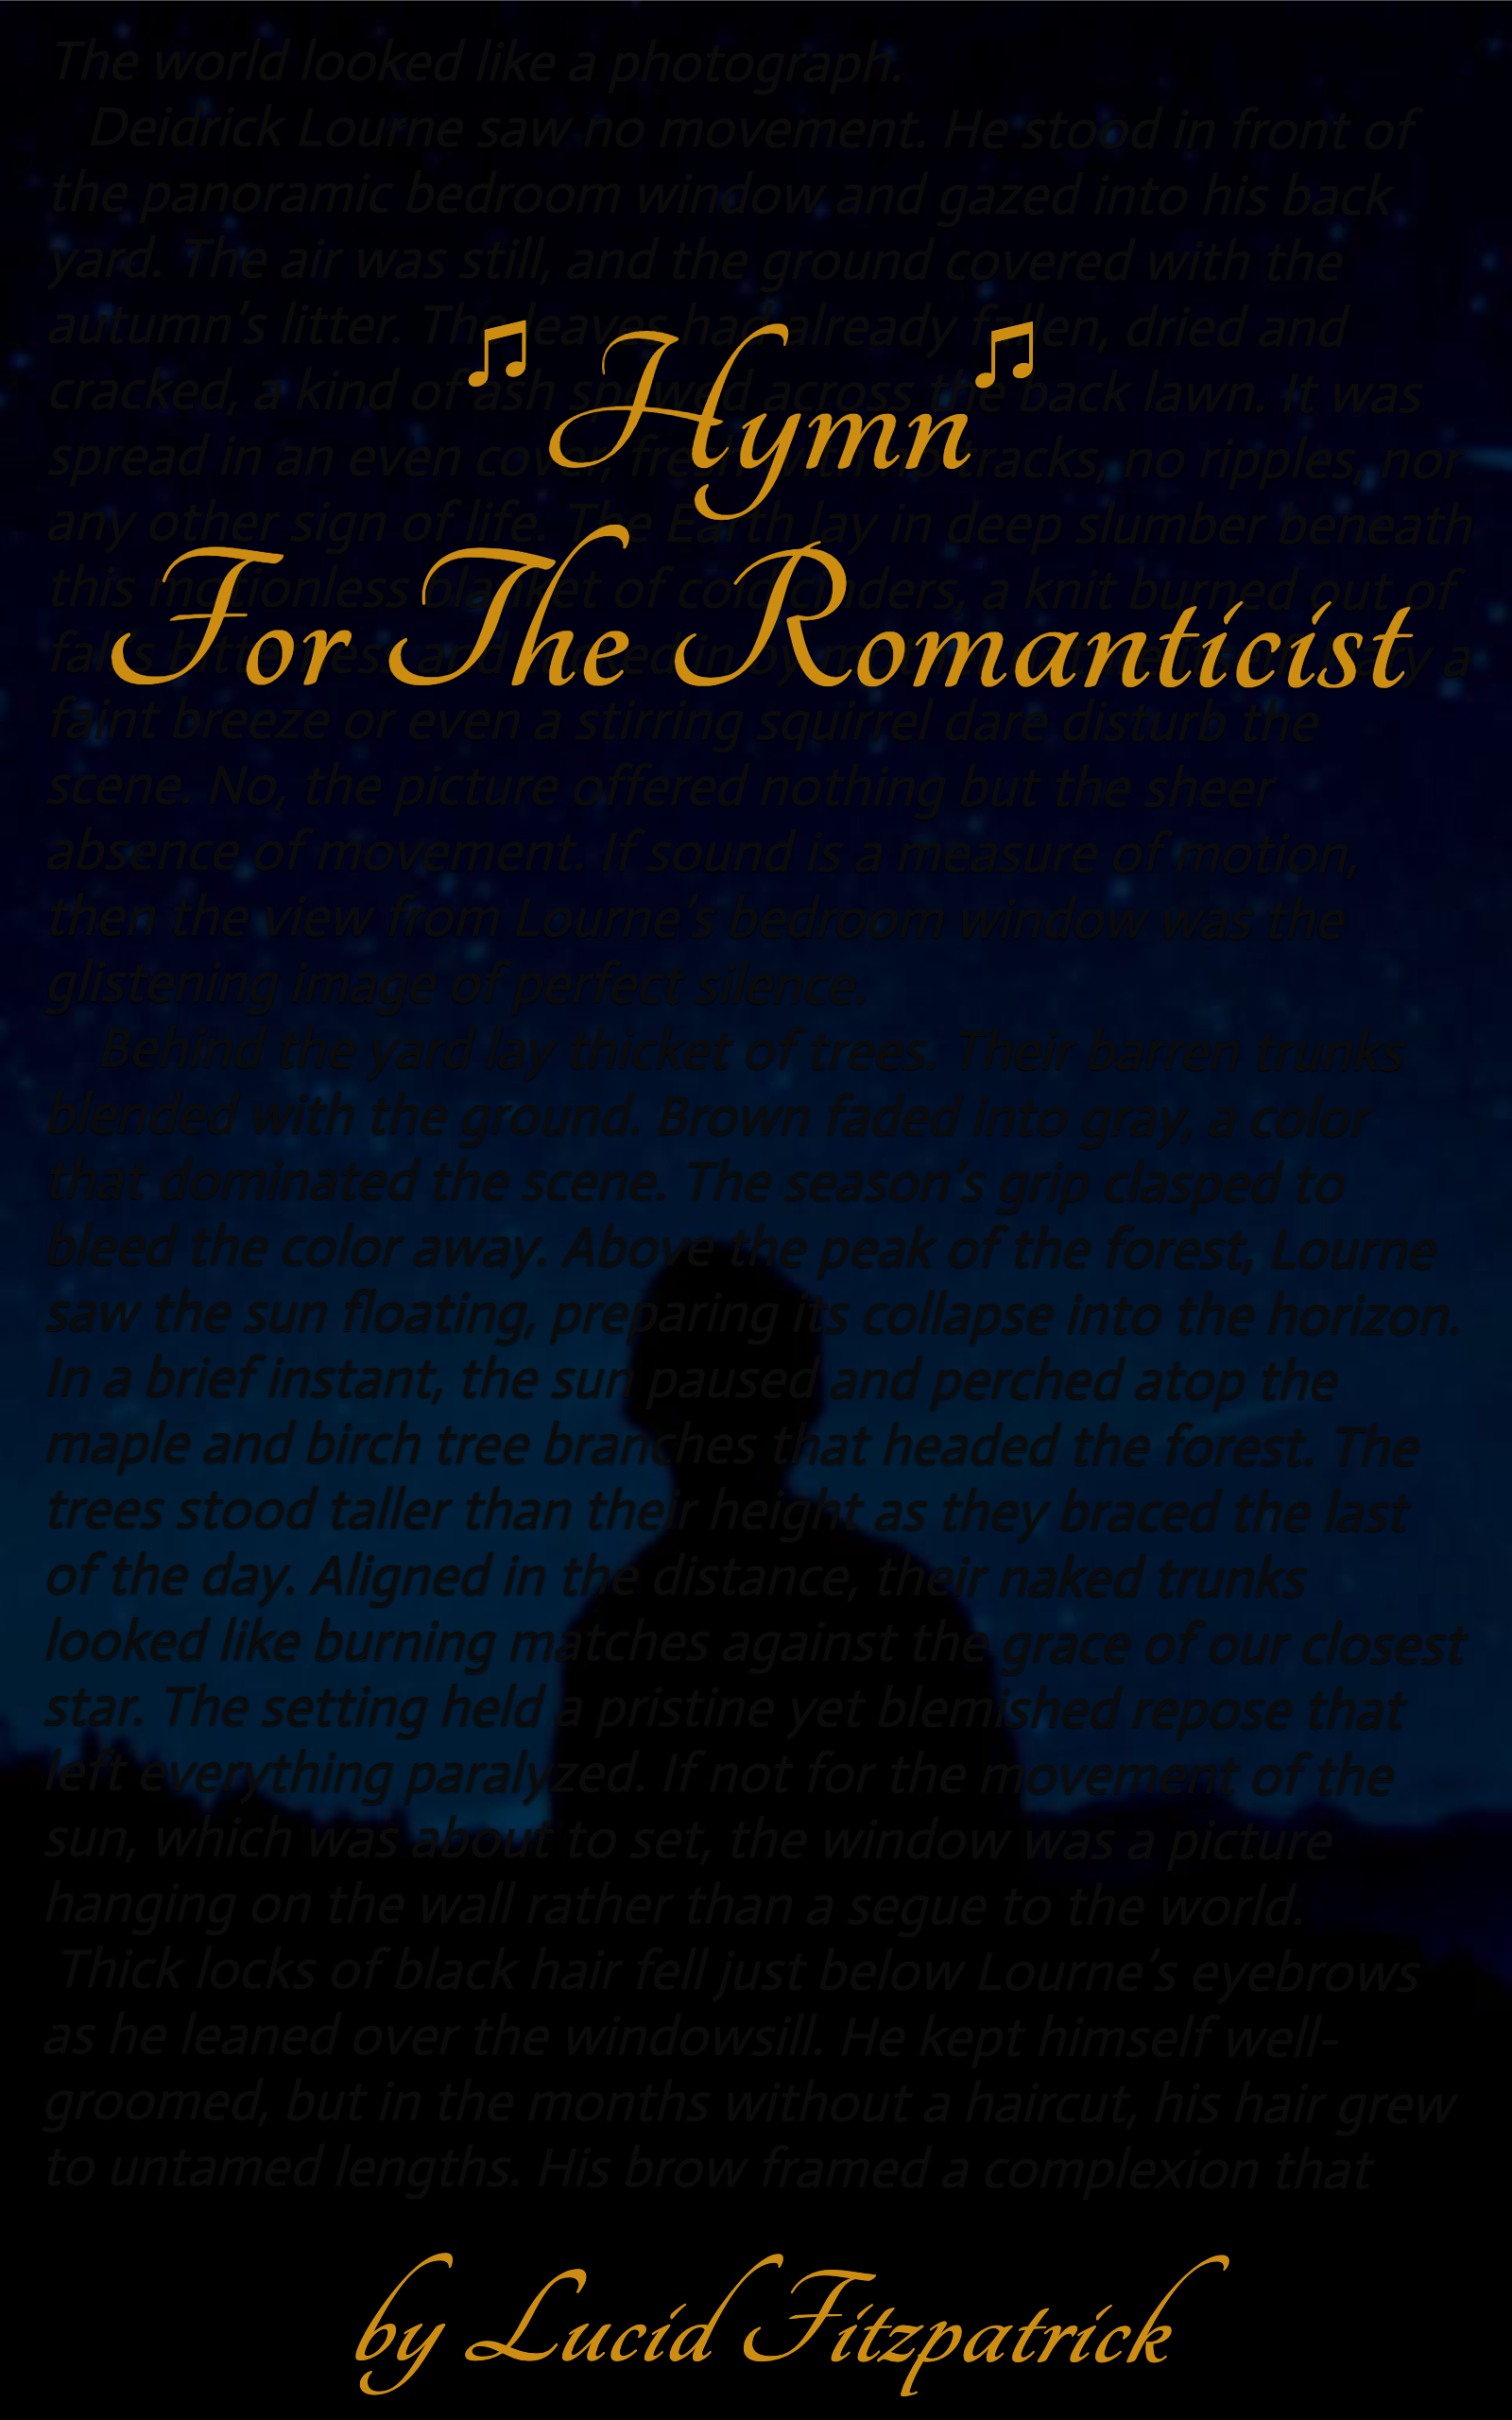 Hymn for the Romanticist